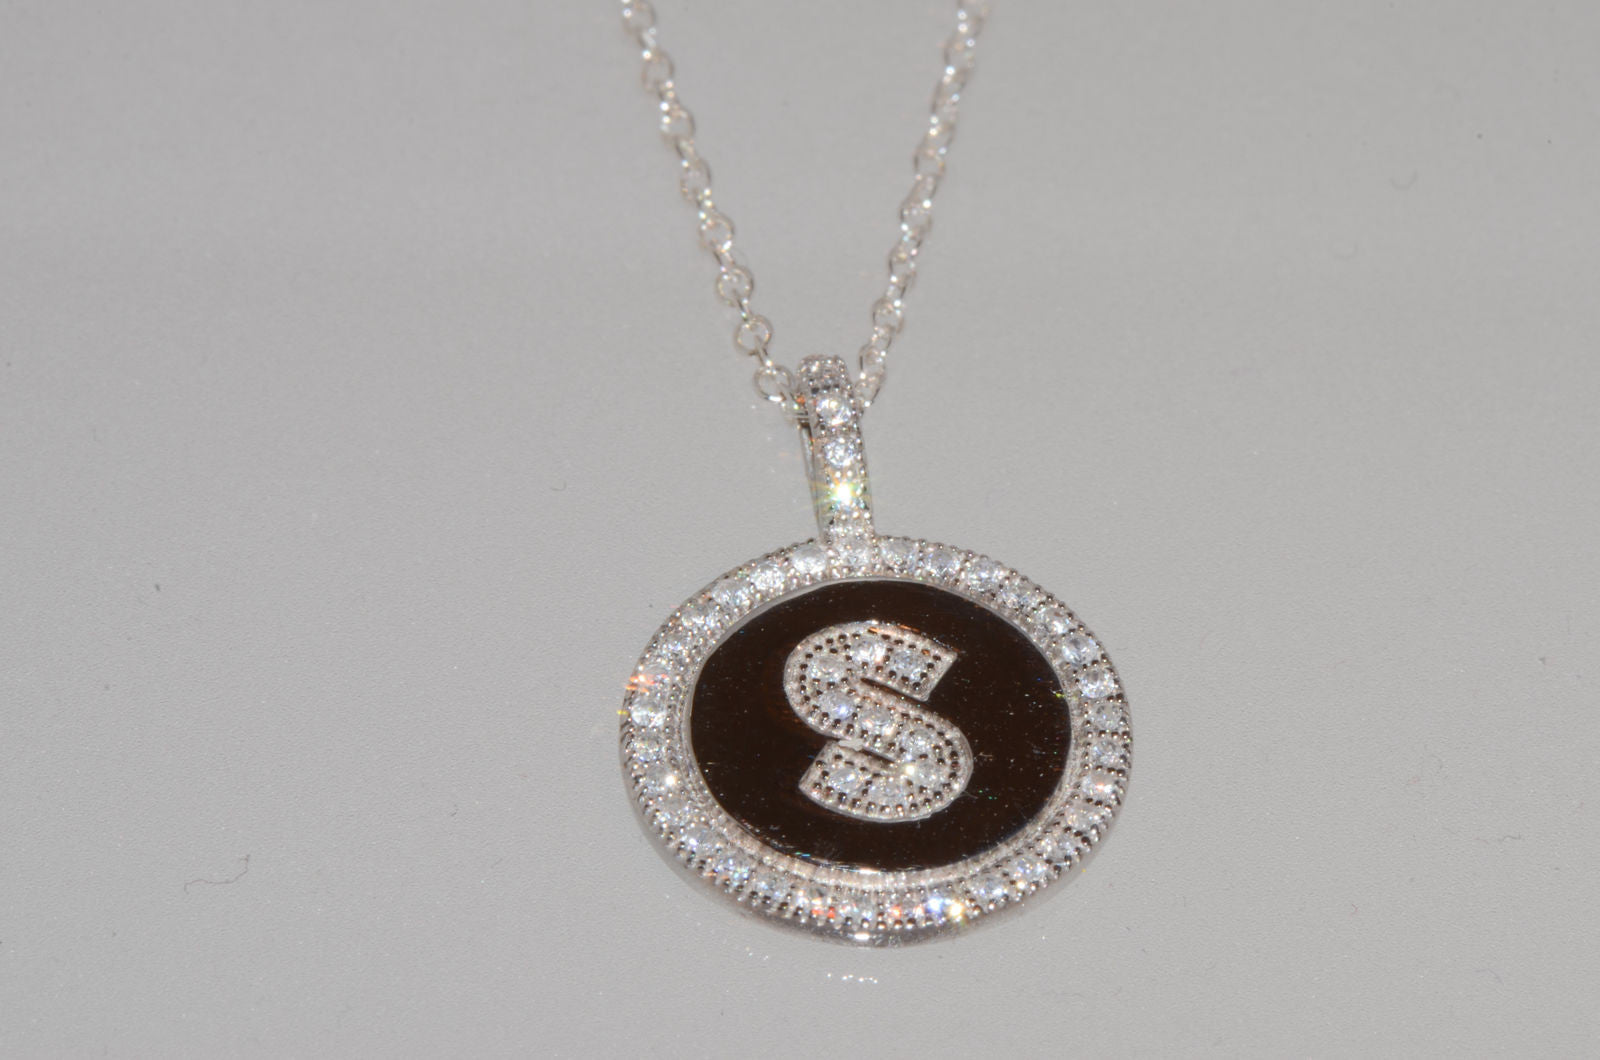 b7c752c114fc8 Sterling Silver Letter S Initial Necklace Micropave CZ Cubic Zirconia